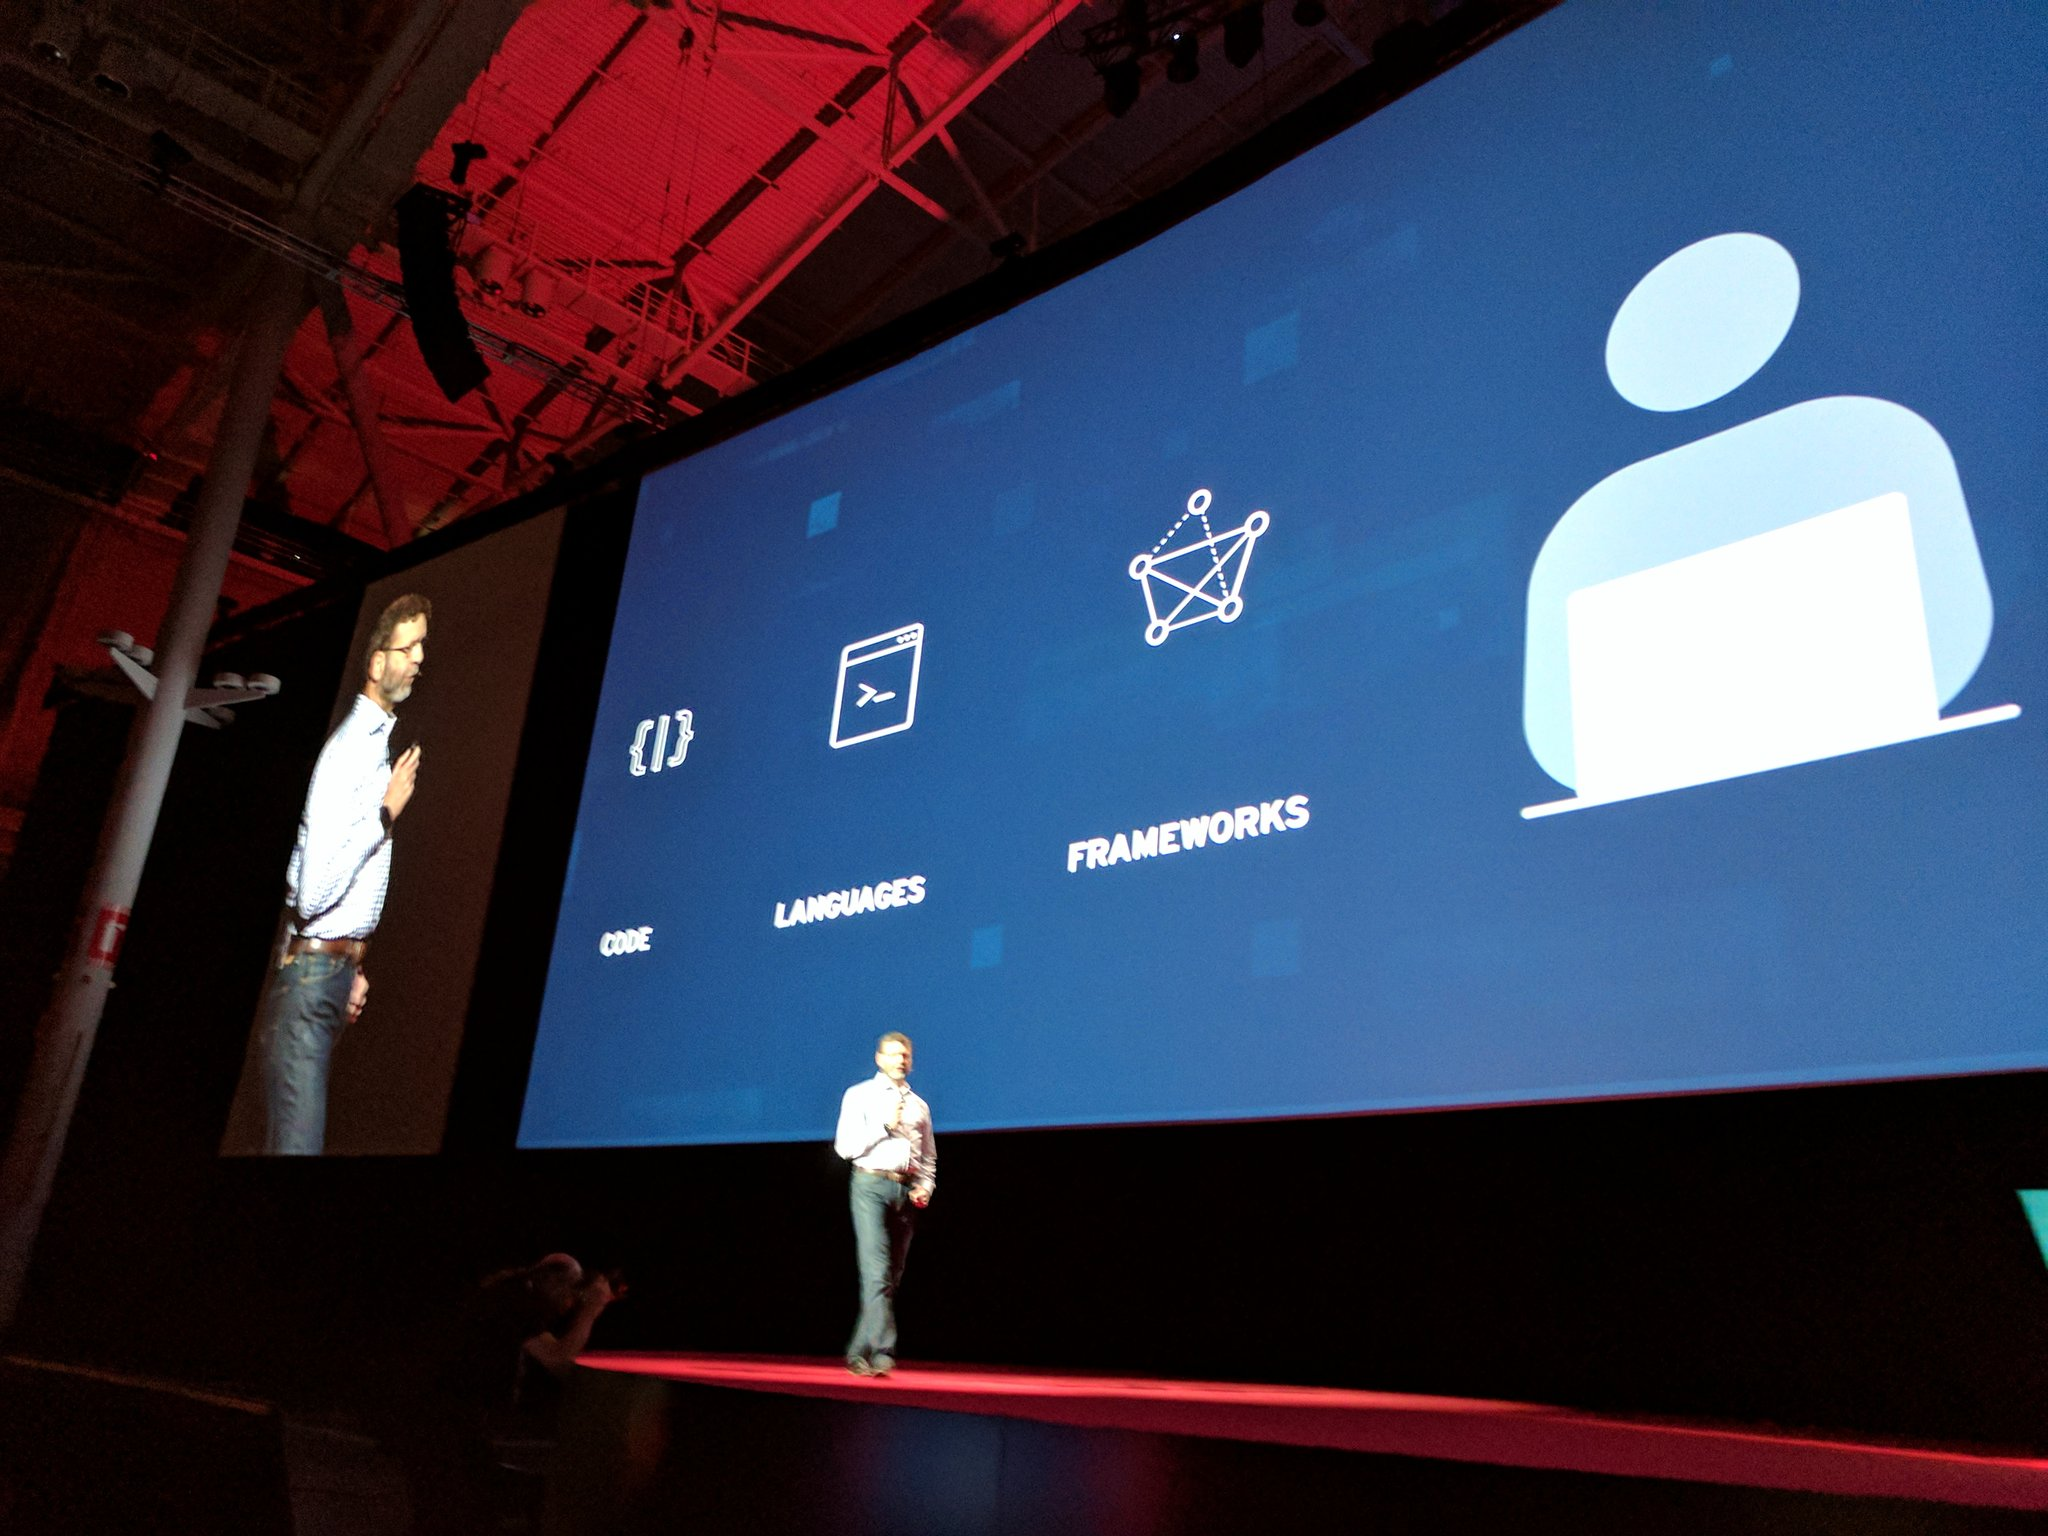 Cormier is now on to...  the developer. #rhsummit https://t.co/J5wRAf4wn1